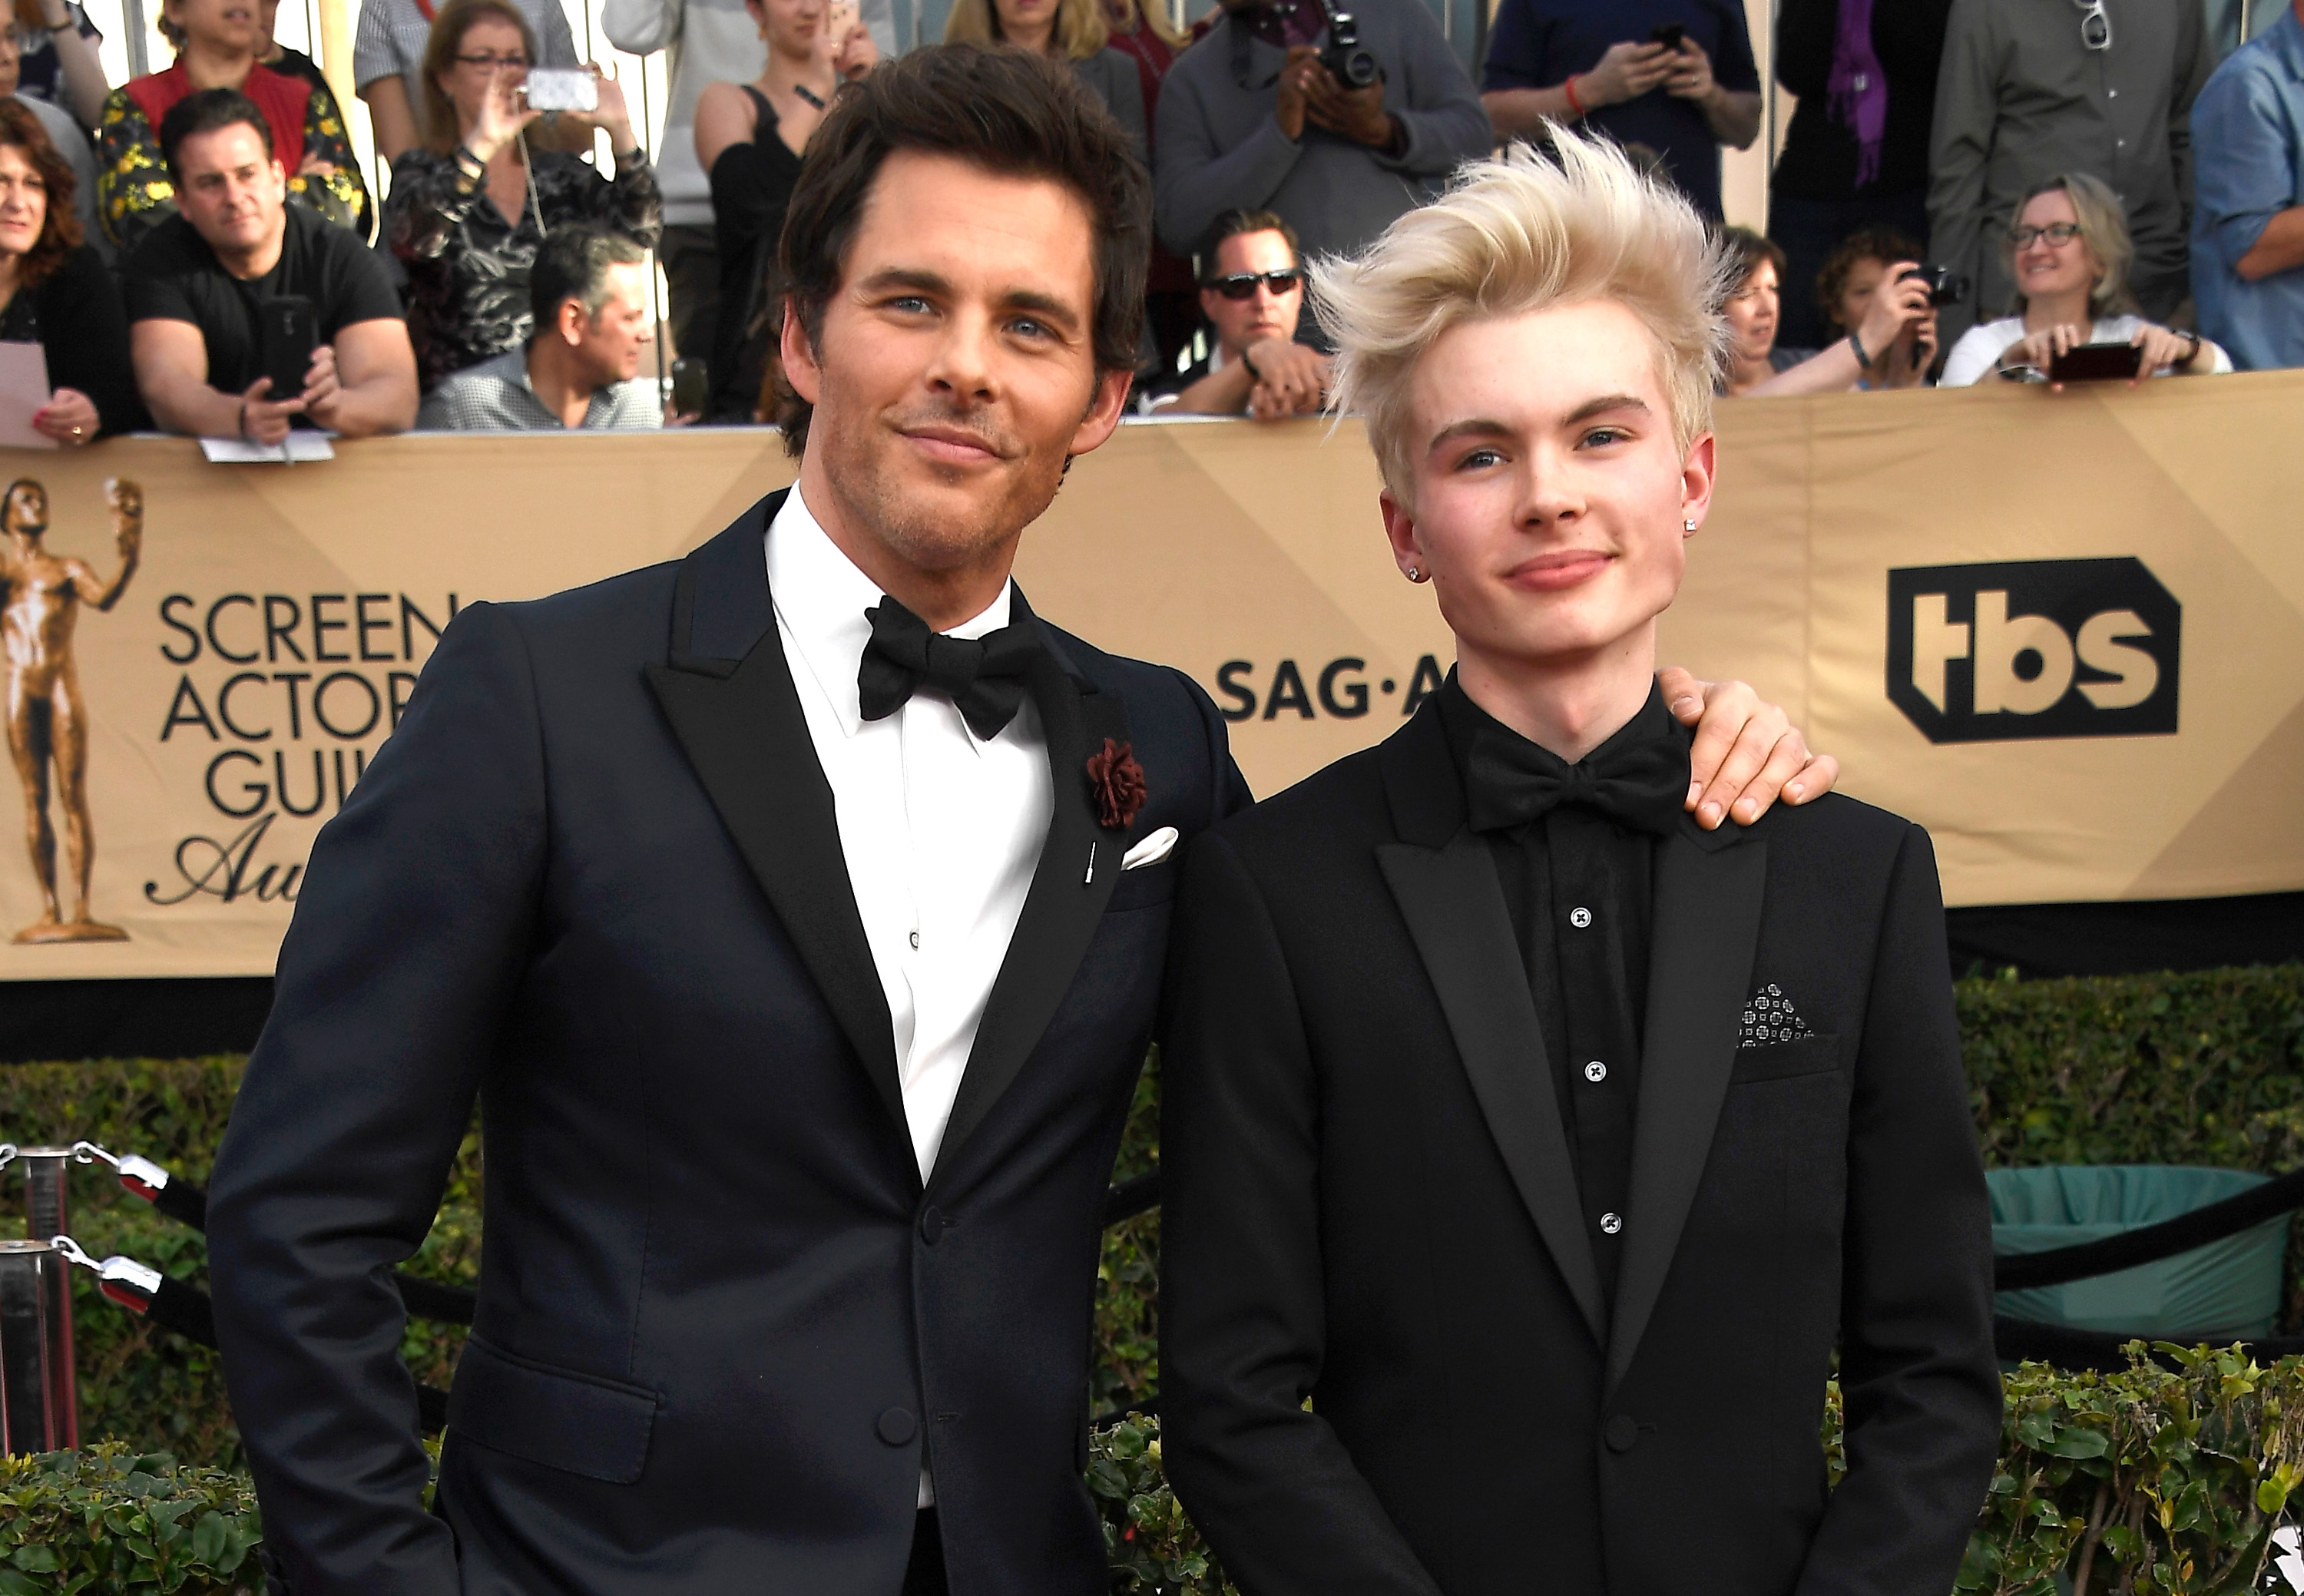 Actor James Marsden (L) and Jack Marsden attend The 23rd Annual Screen Actors Guild Awards at The Shrine Auditorium on January 29, 2017 in Los Angeles, California.